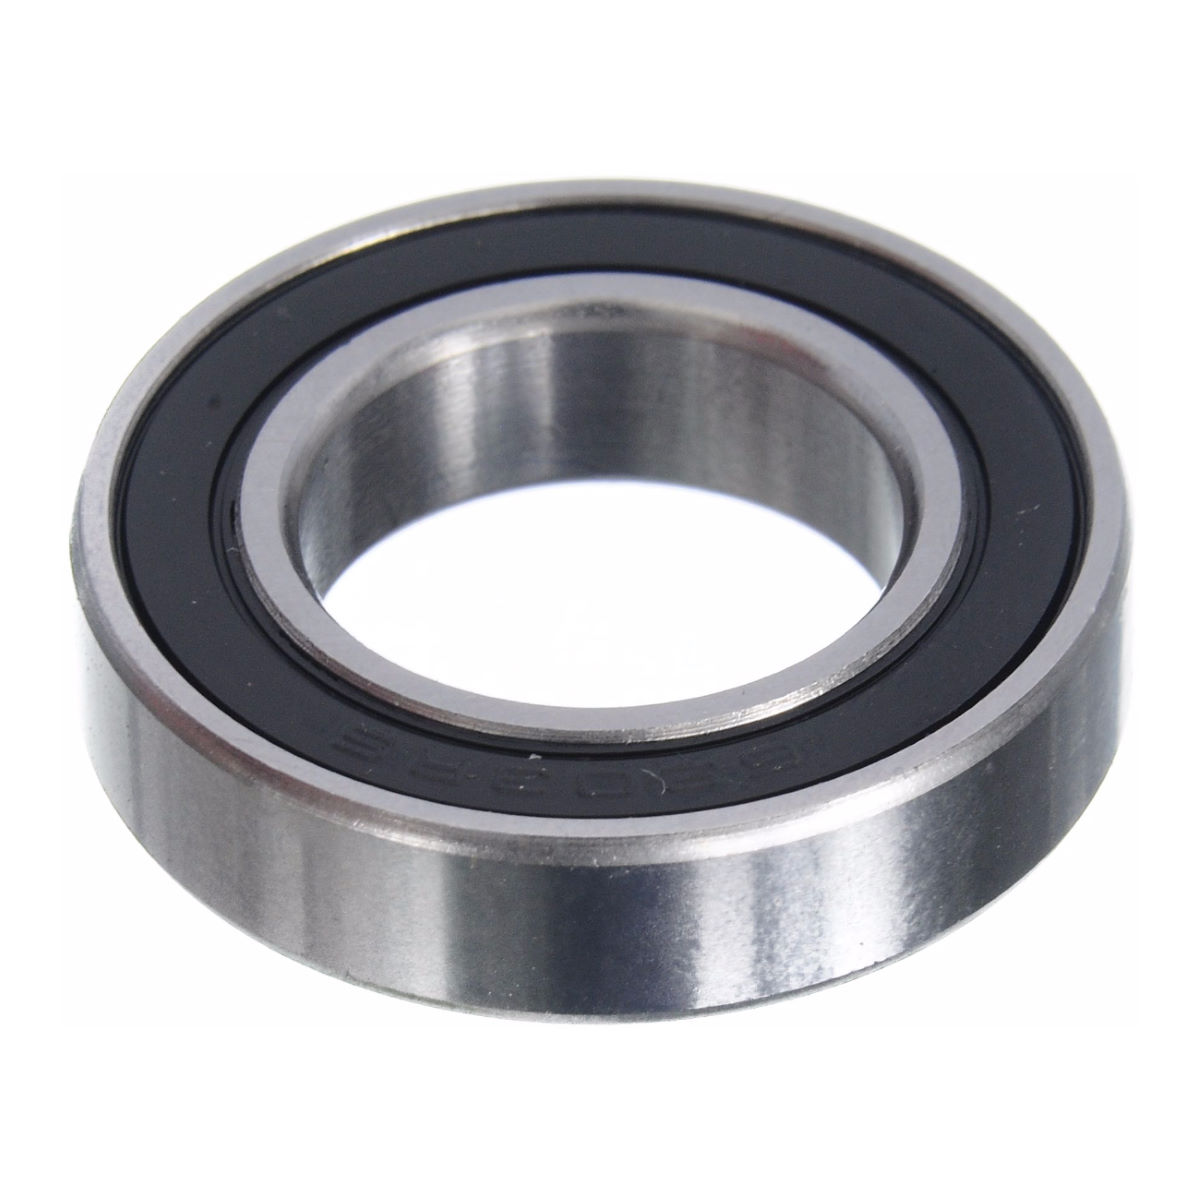 Brand-X Brand-X Sealed Bearing - 6903 (2RS)   Wheel Hub Spares